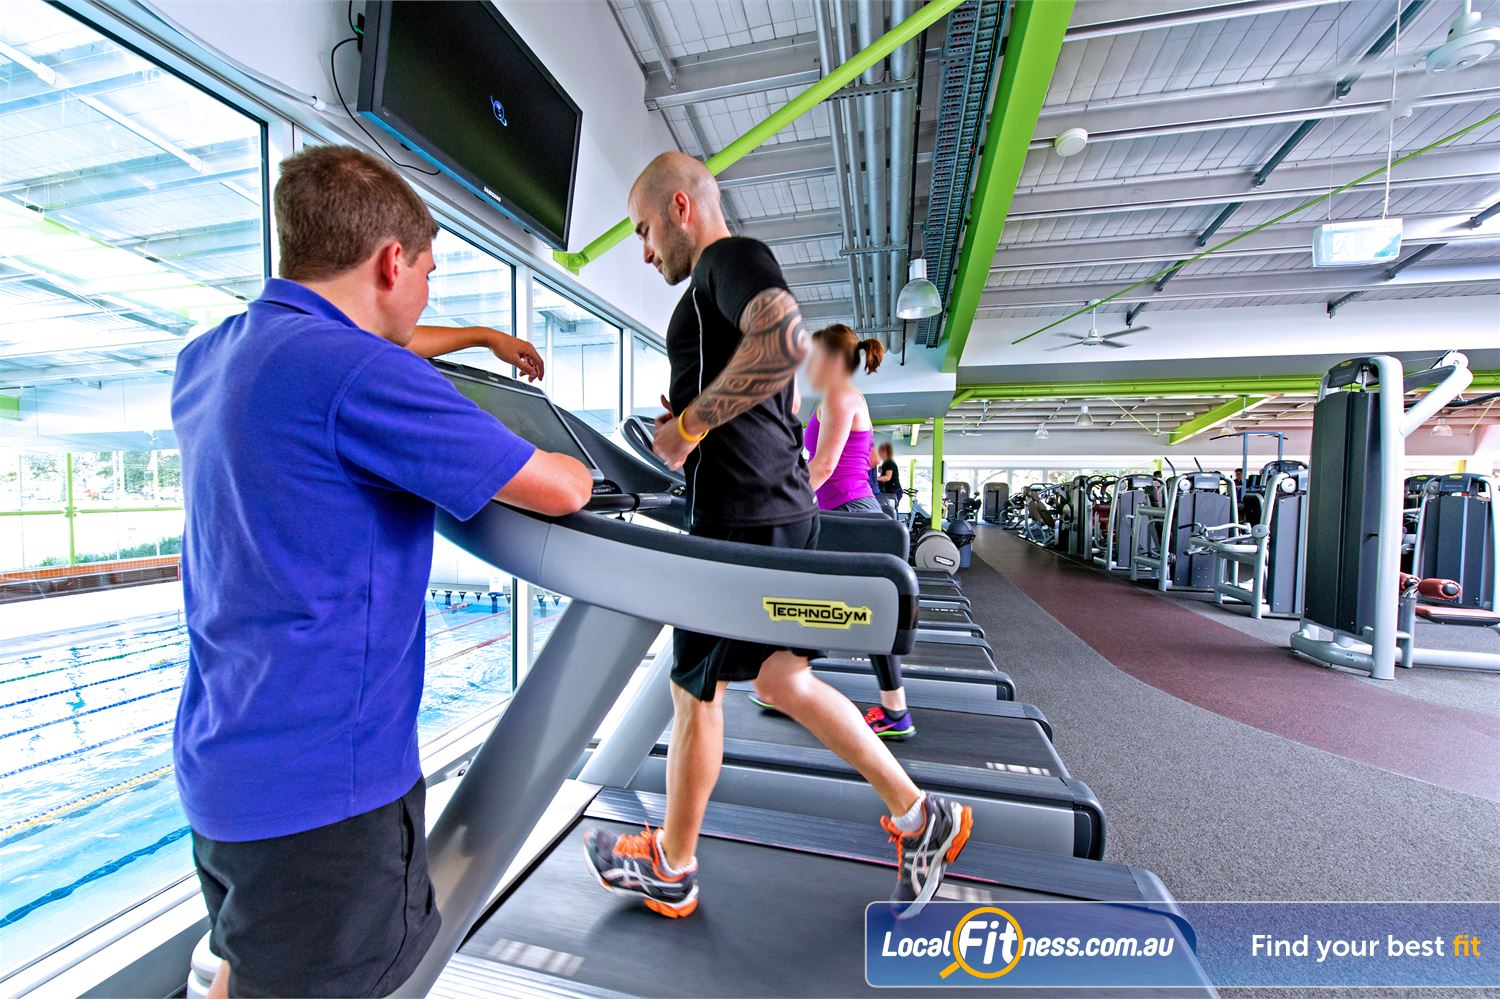 Annette Kellerman Aquatic Centre Marrickville Get the right advice about cardio and weight-loss training.